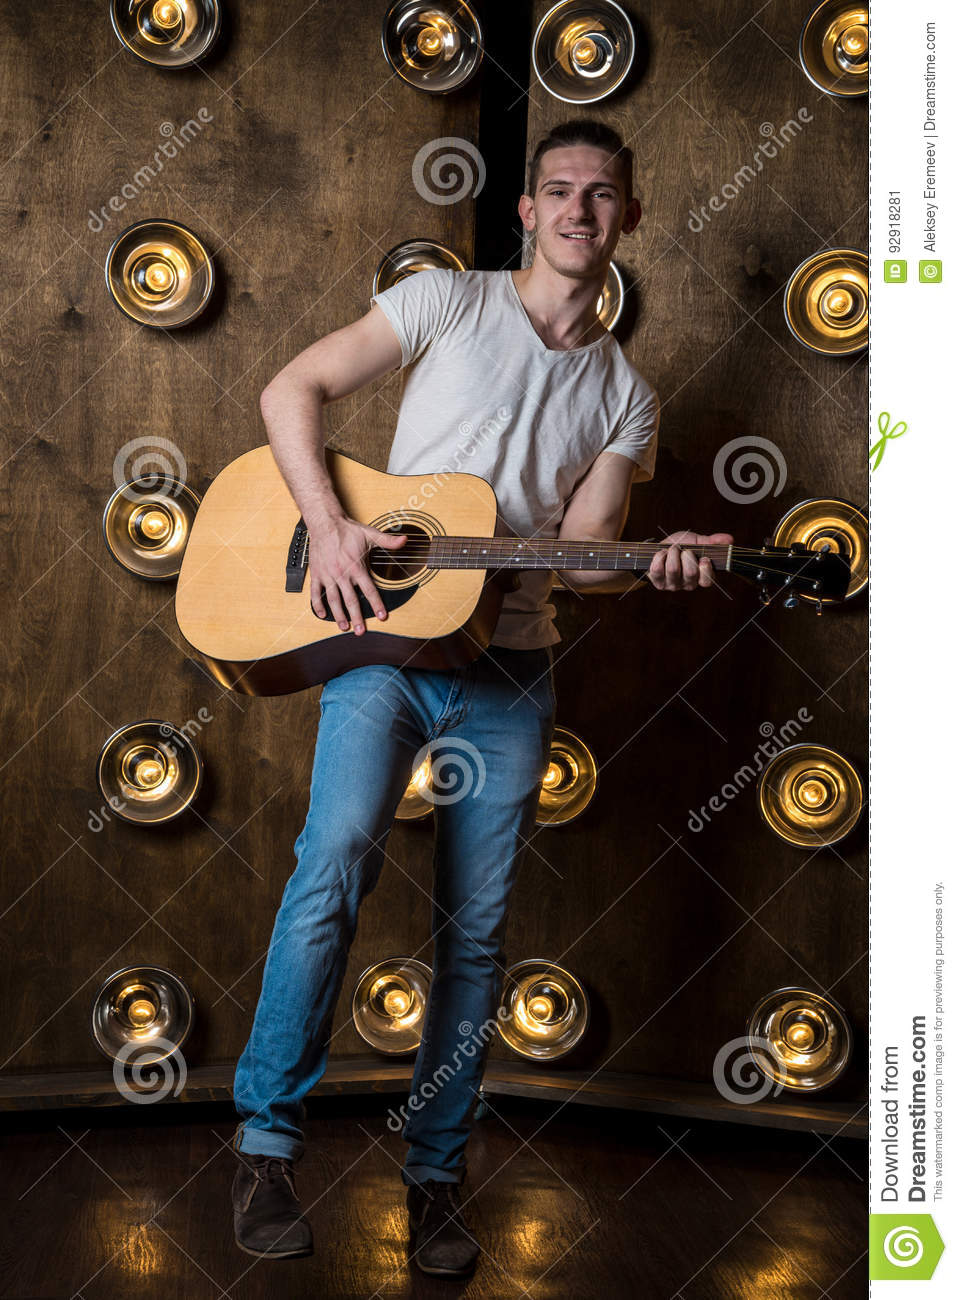 Guitarist, Music. A Young Man Plays An Acoustic Guitar On A ...